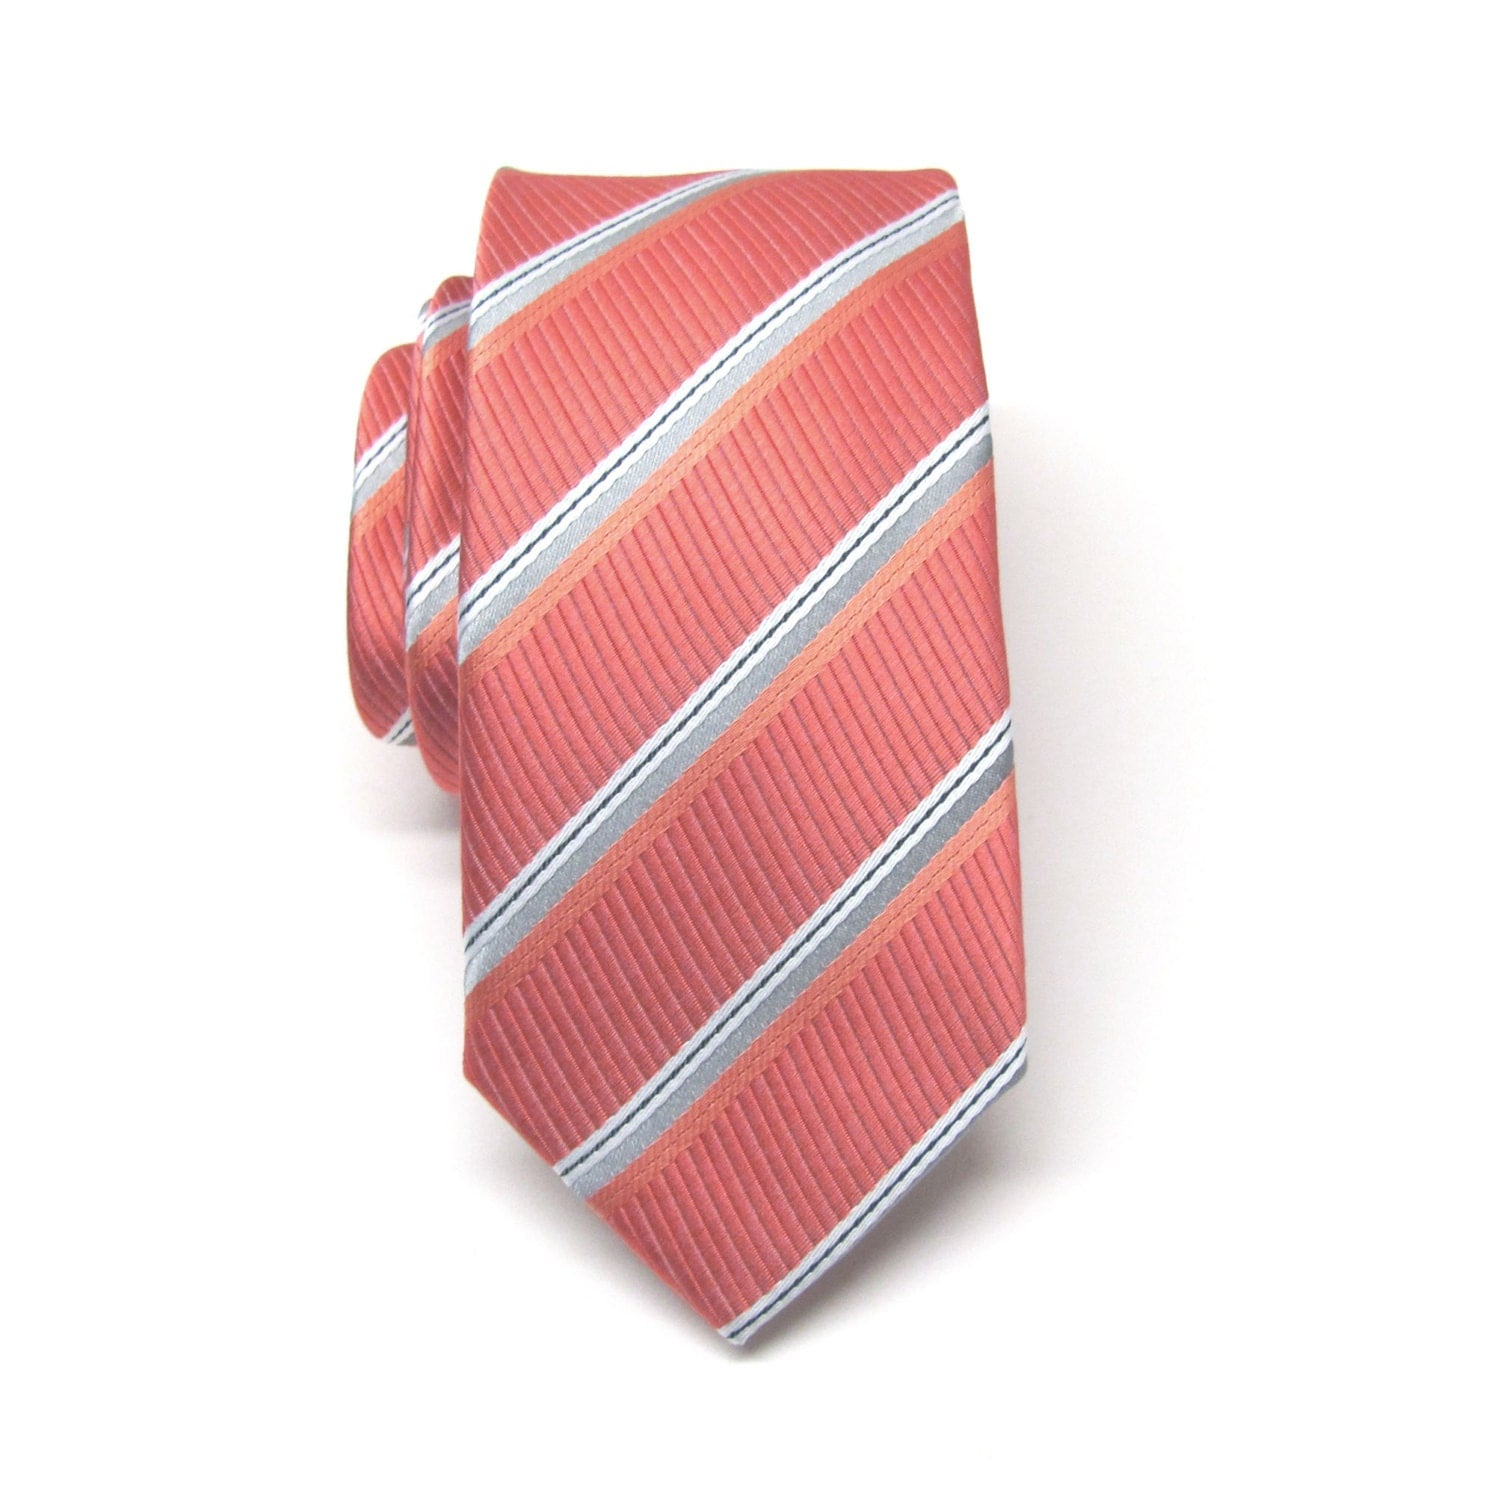 Free shipping available. The Tie Bar's wedding collection offers the perfect coral tie or accessory for your big day.